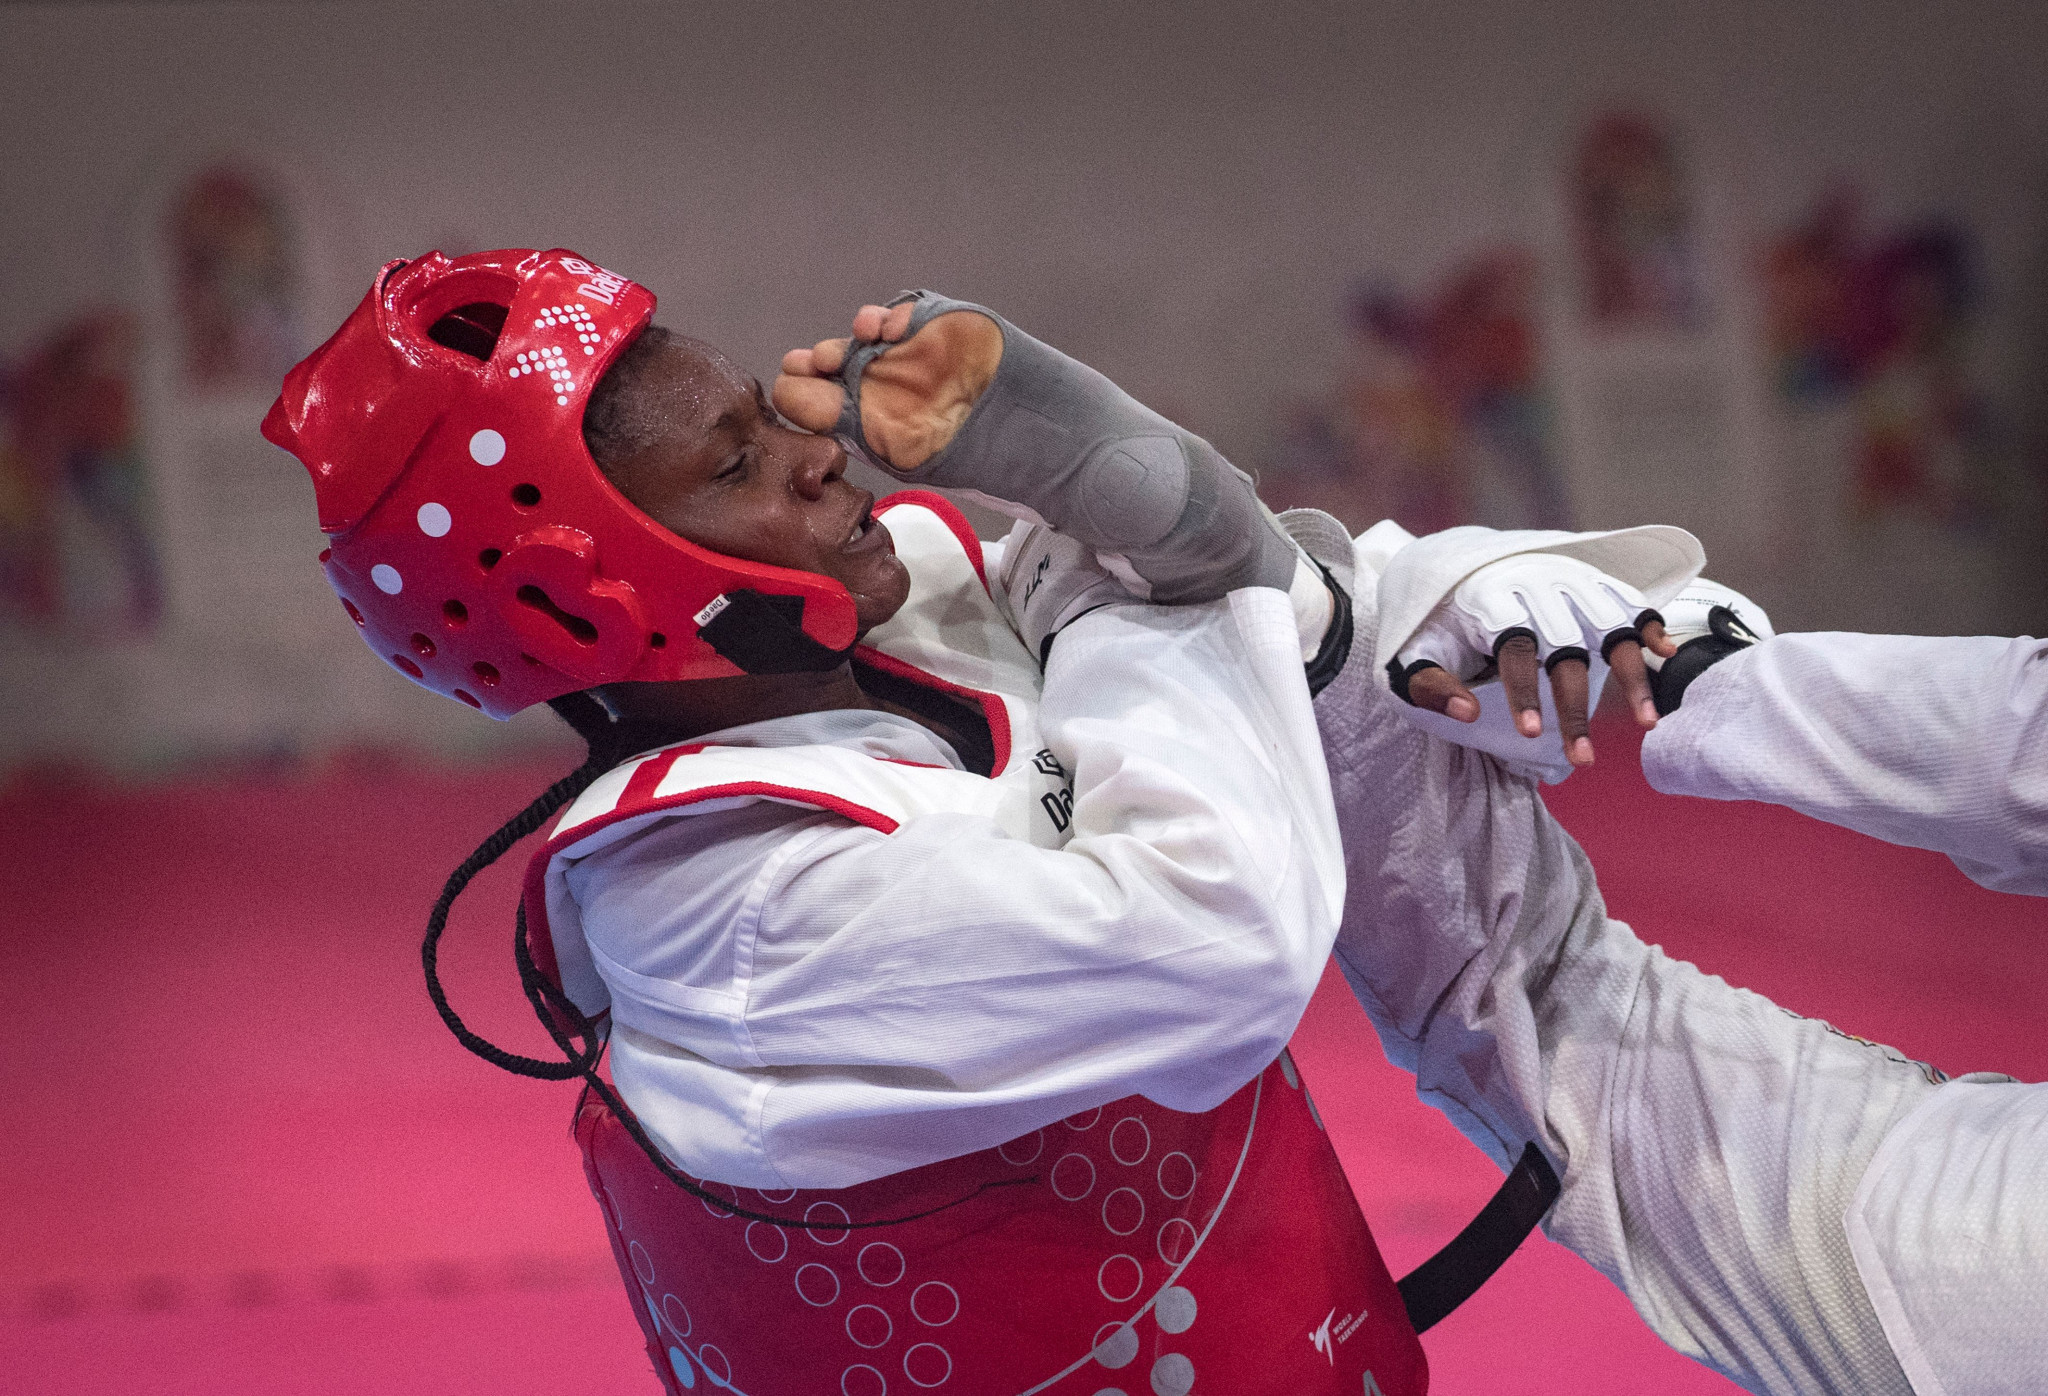 Kenya Taekwondo Federation President targets more Tokyo 2020 berths and Dakar 2022 success